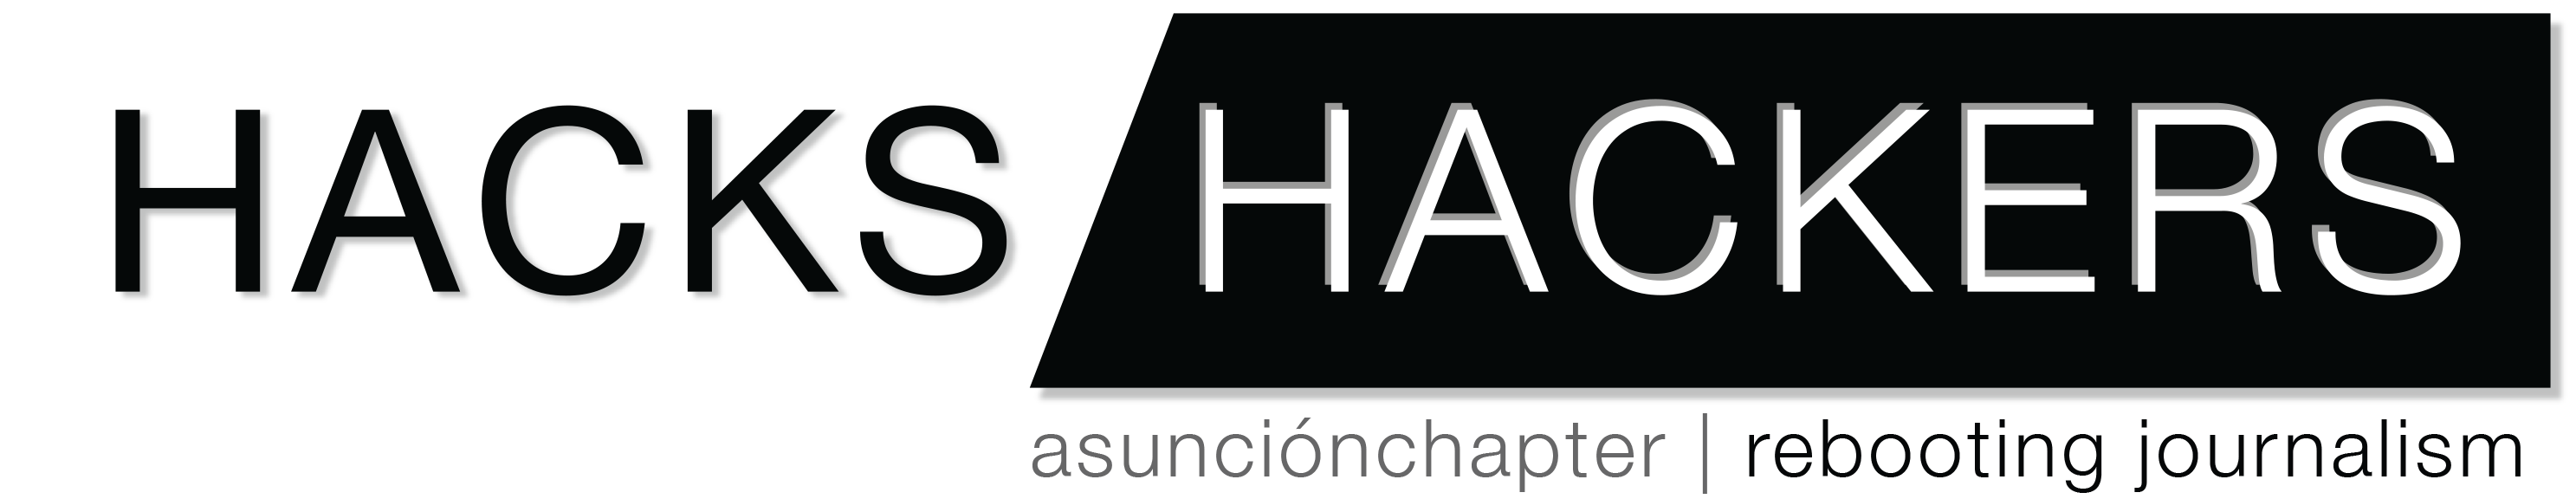 Hack Hackers - Asuncion